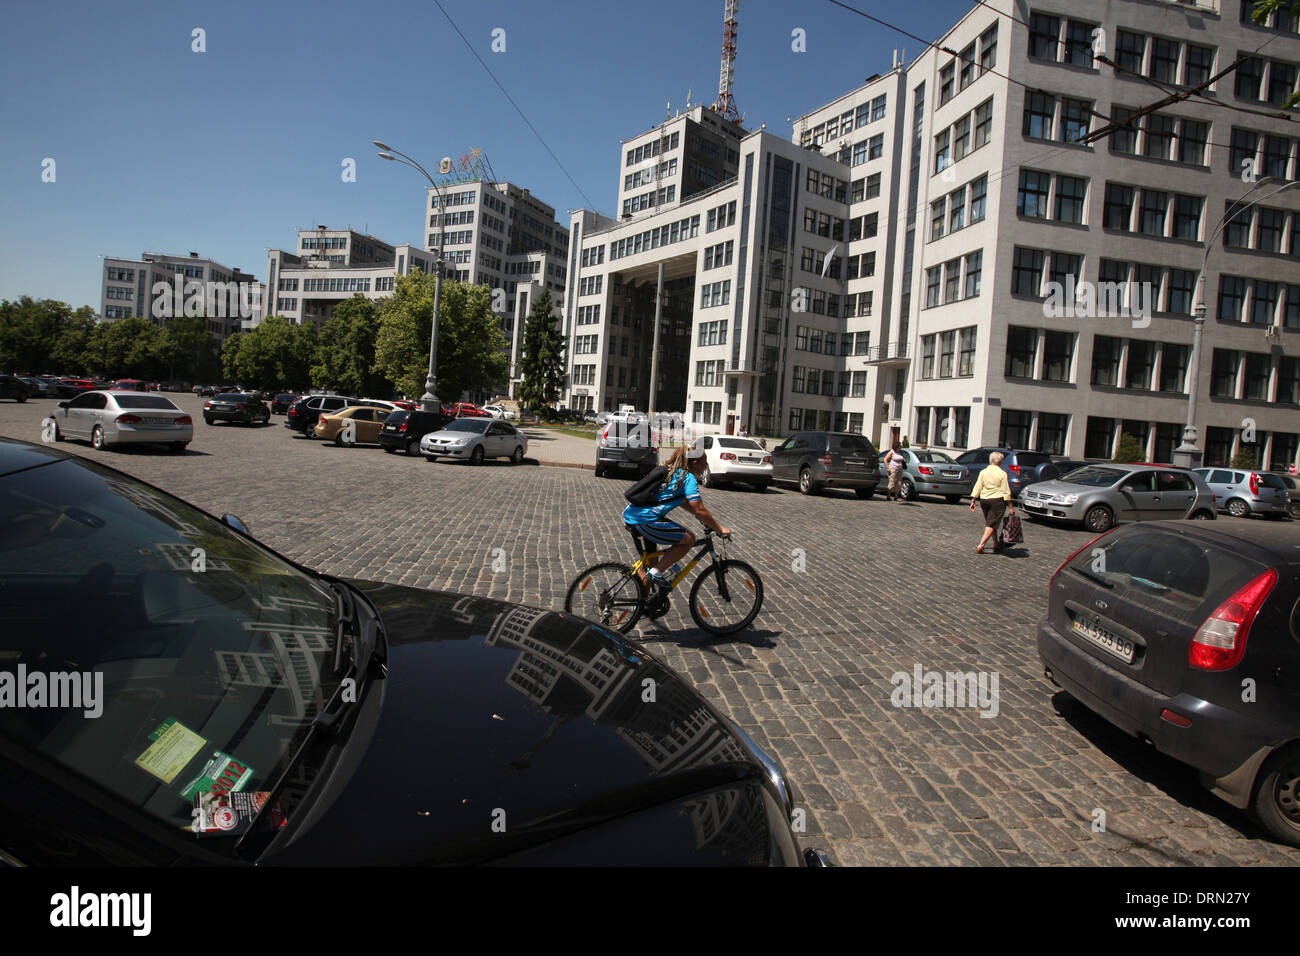 The Gosprom Building also known as the Derzhprom Building or the State Industry Palace in Freedom Square in Kharkov, Ukraine. - Stock Image